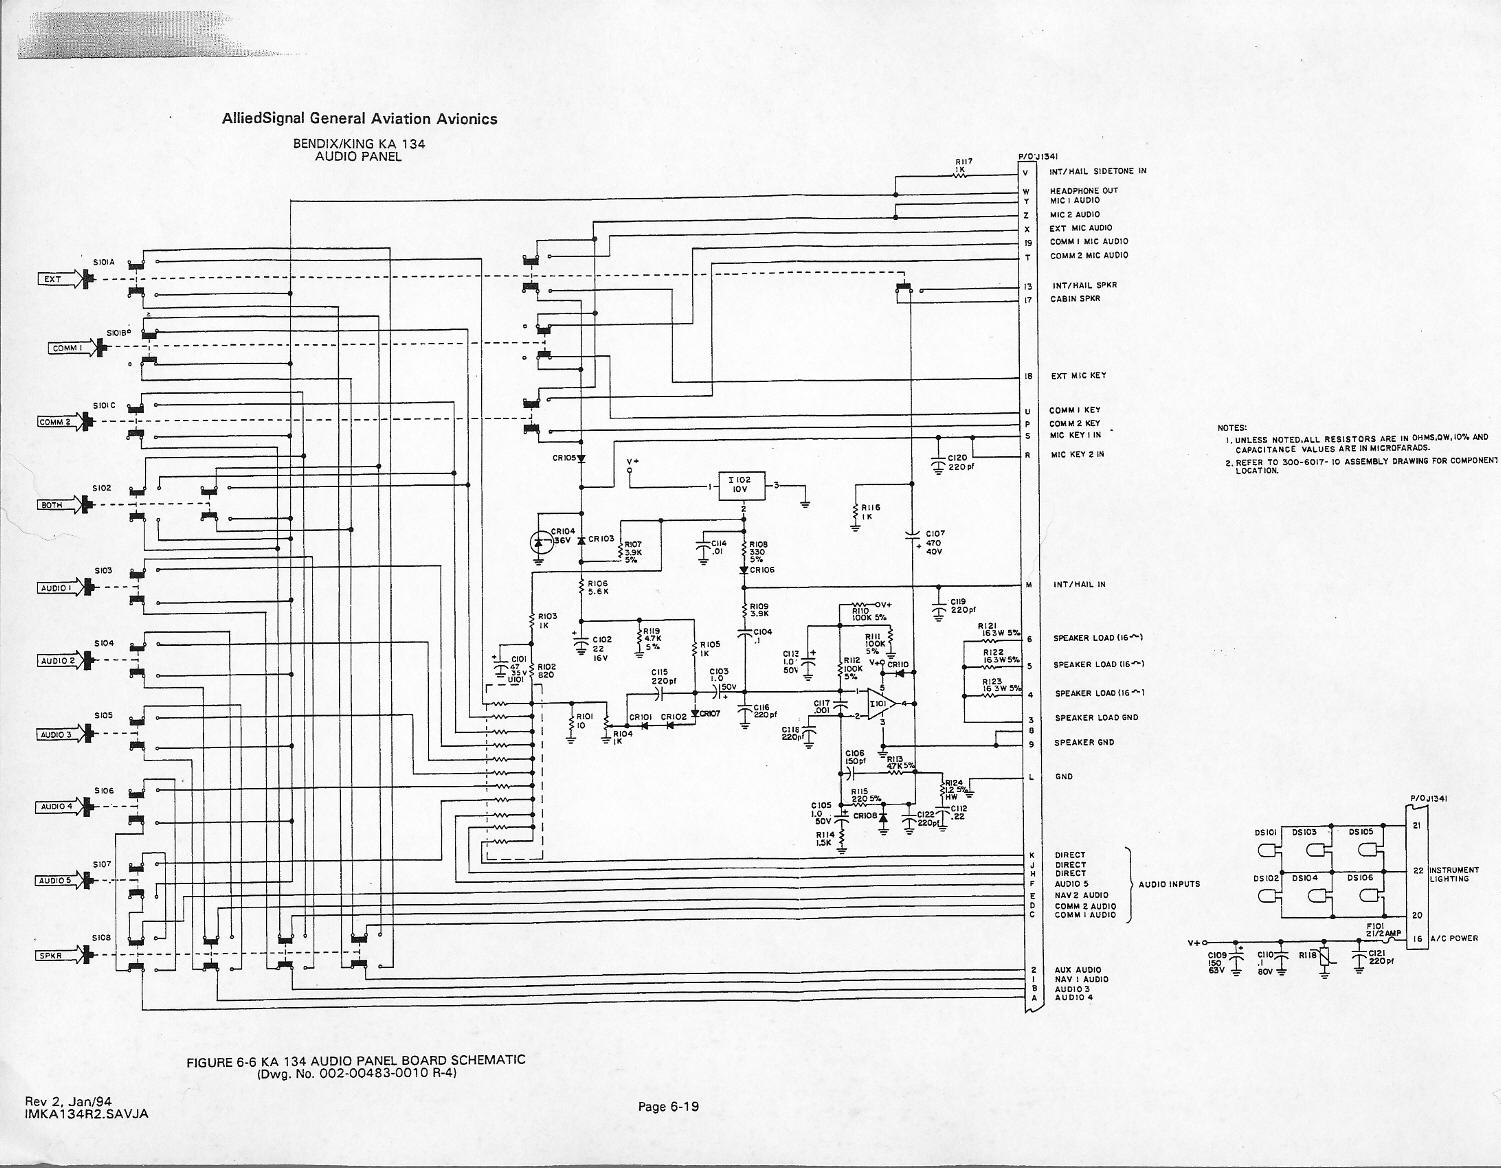 ka134_r4 first flight prep king ka 134 audio panel wiring diagram at aneh.co